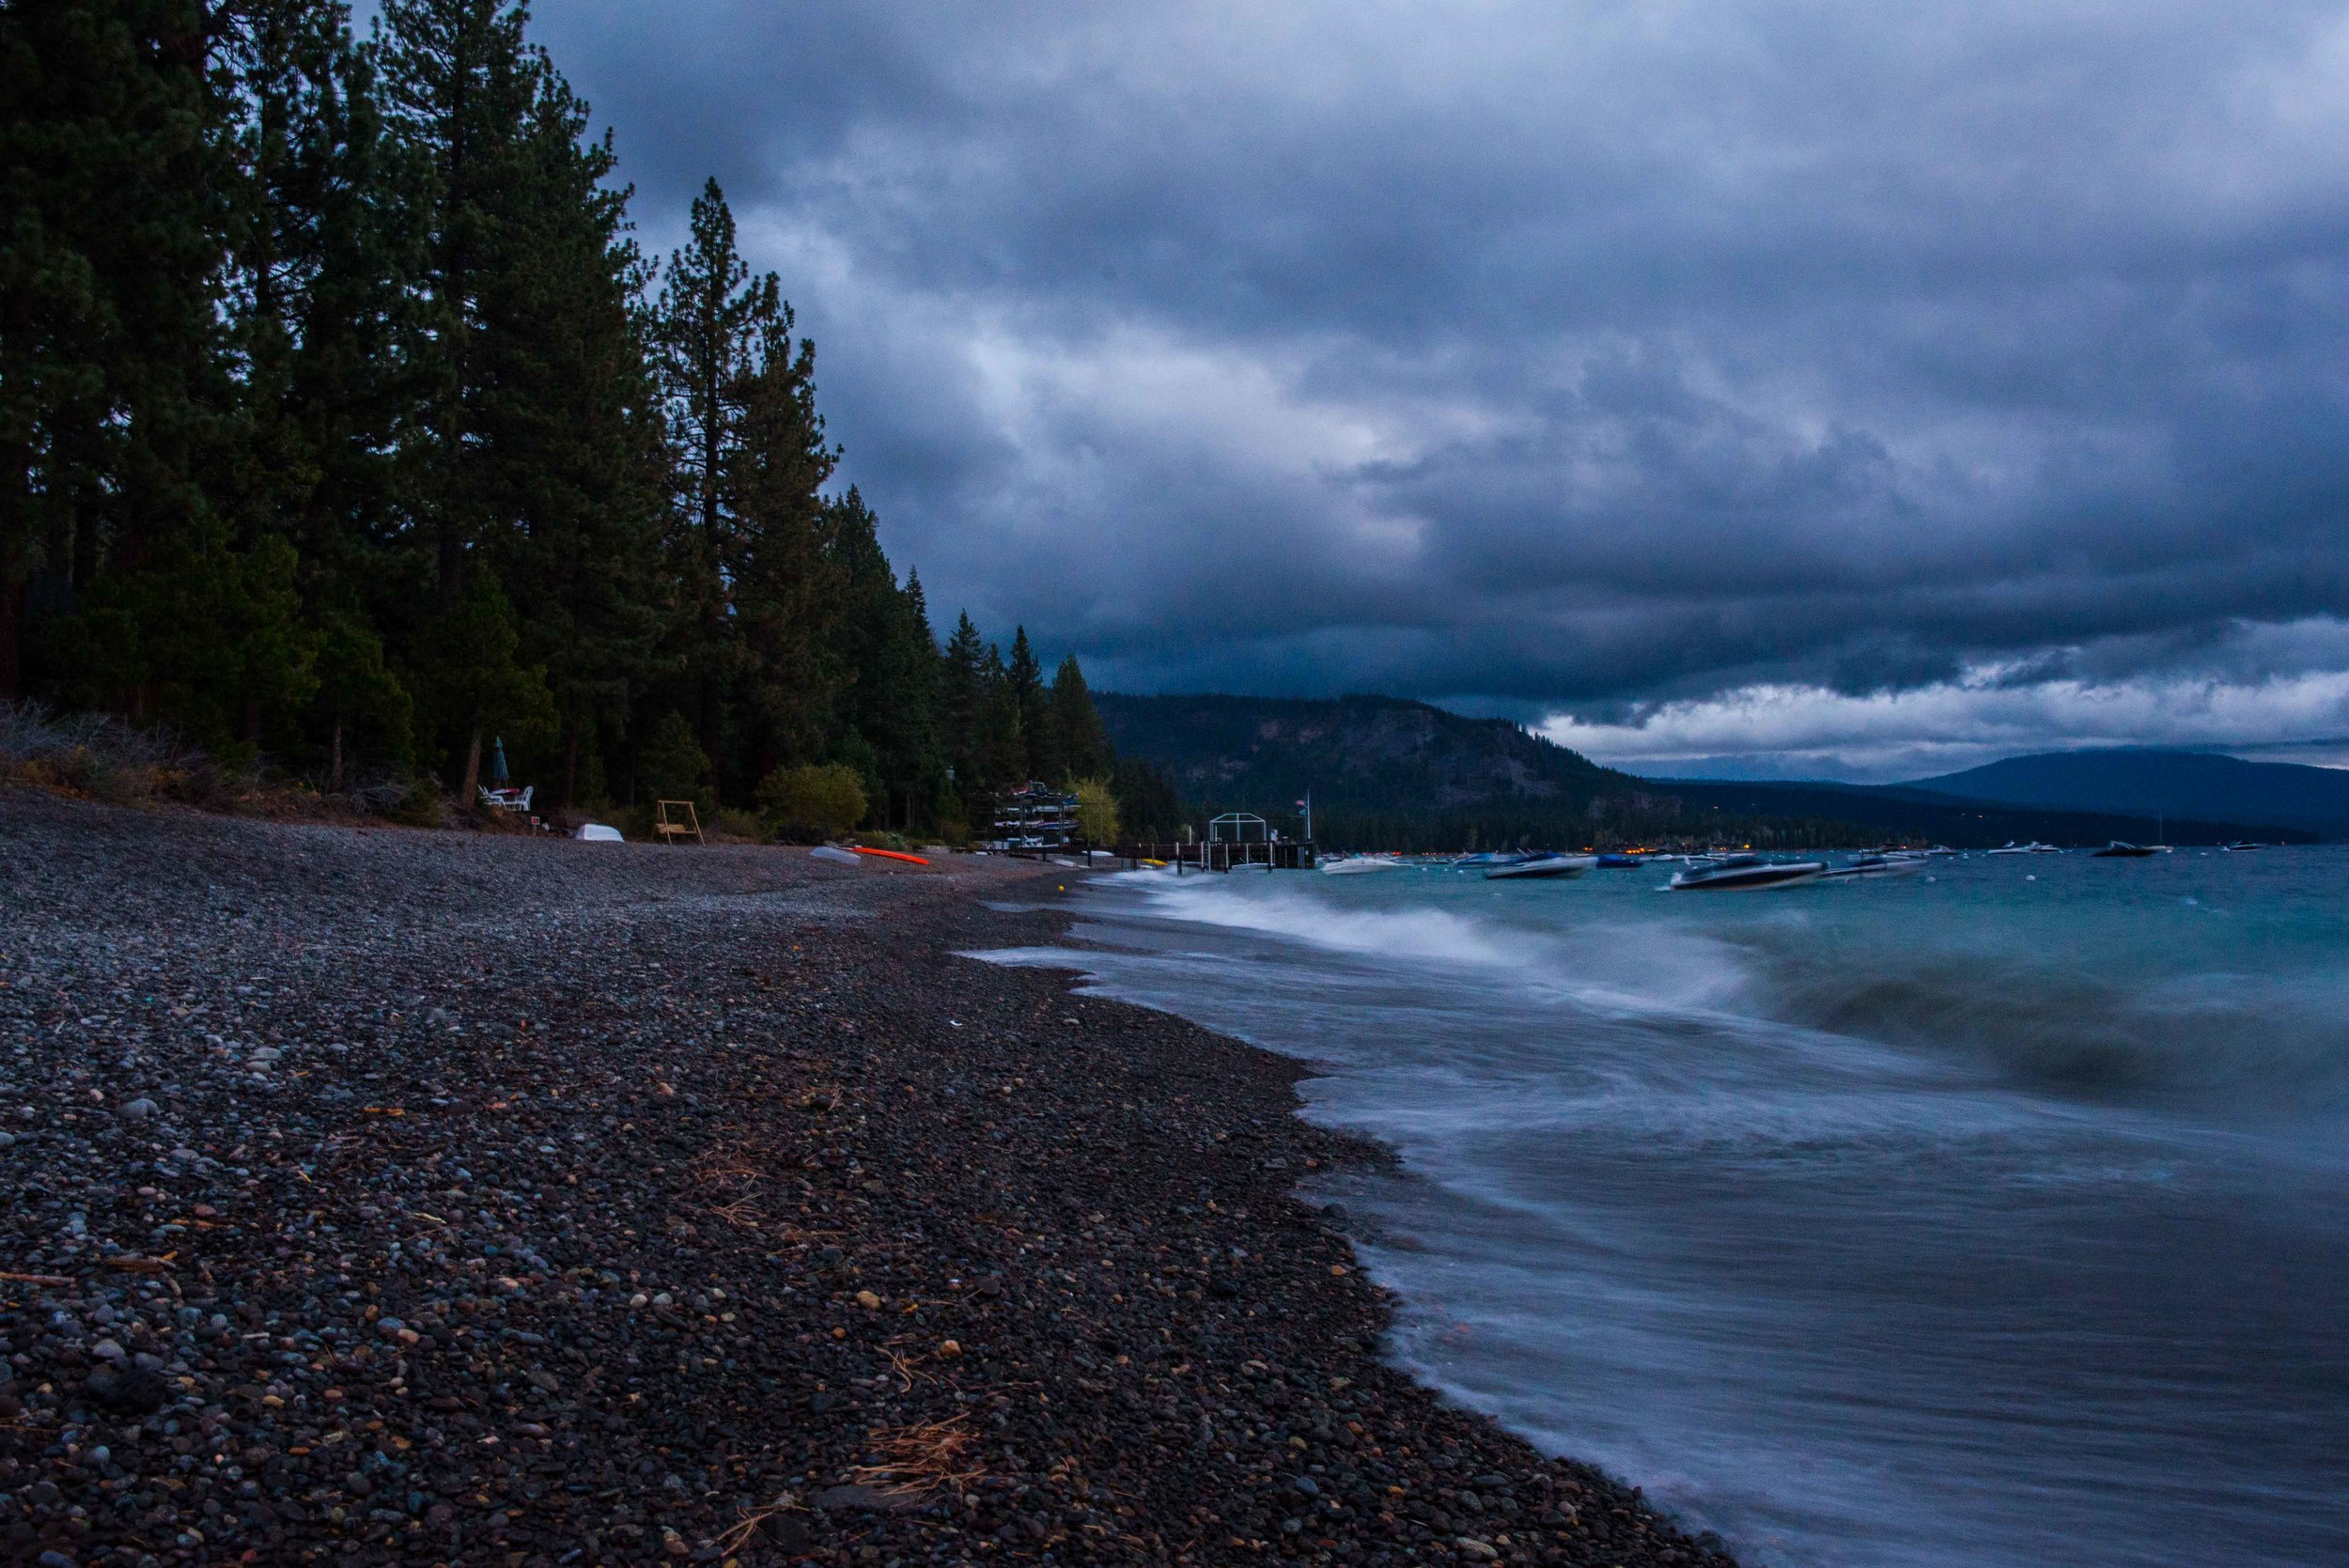 stormy at 6am, no sunrise